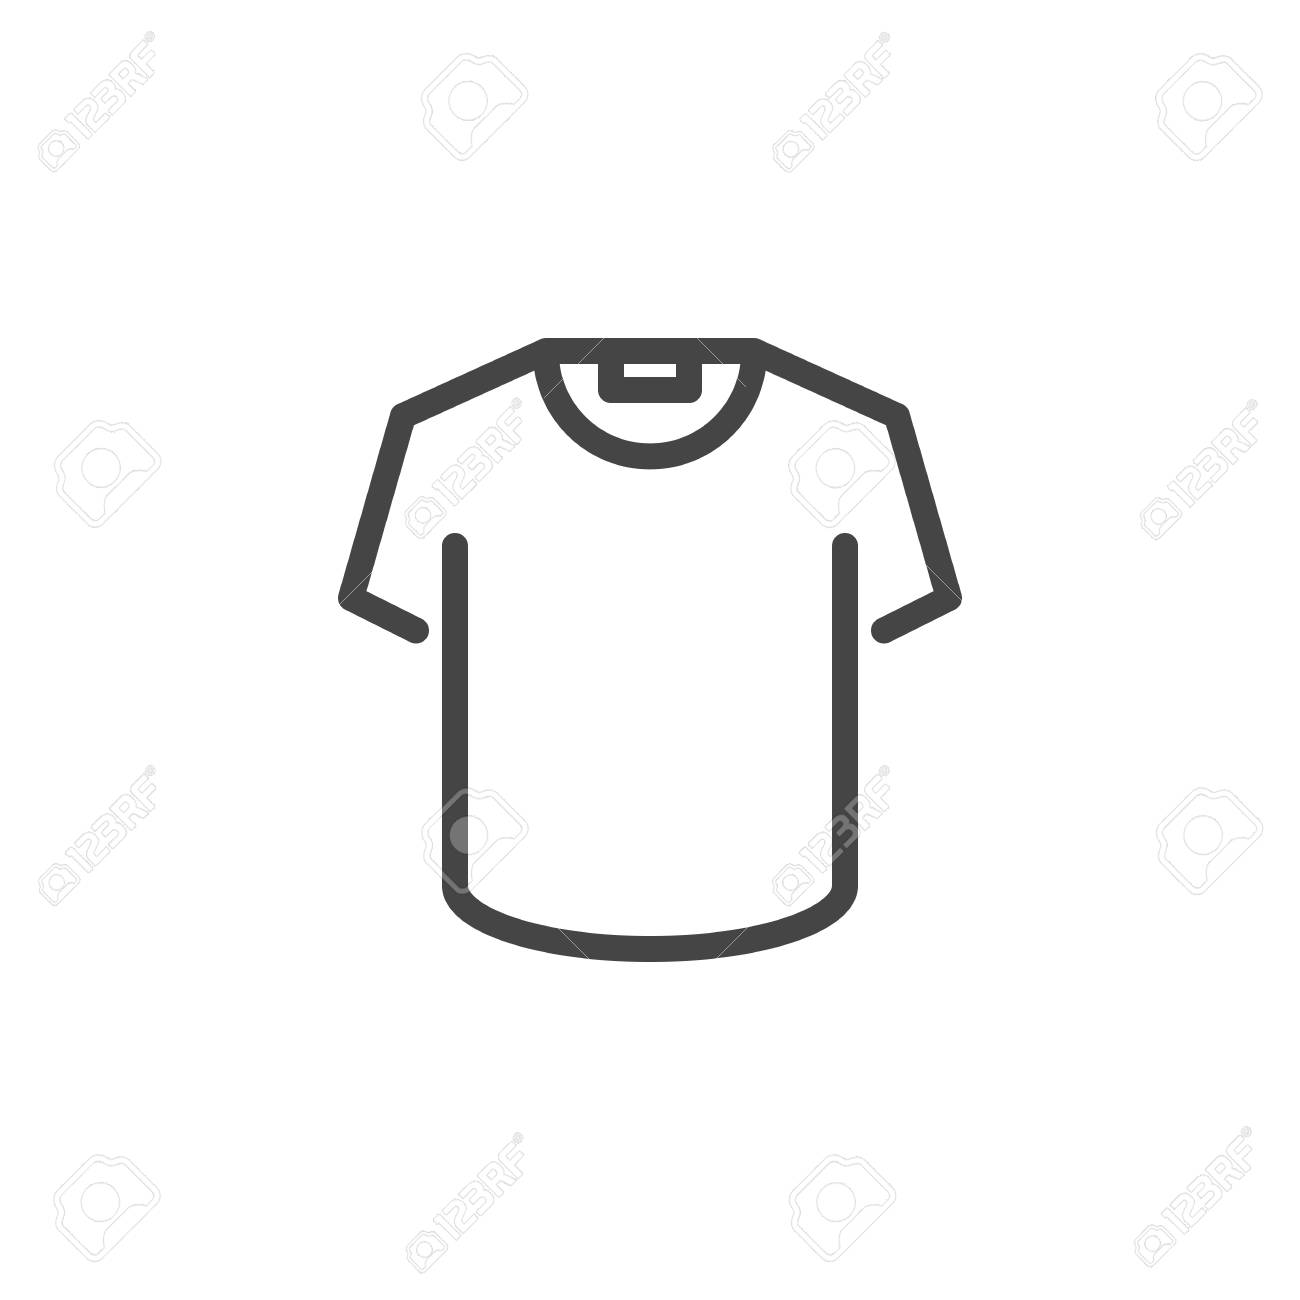 t shirt icon in line design button or sign for online store royalty free cliparts vectors and stock illustration image 106135175 t shirt icon in line design button or sign for online store